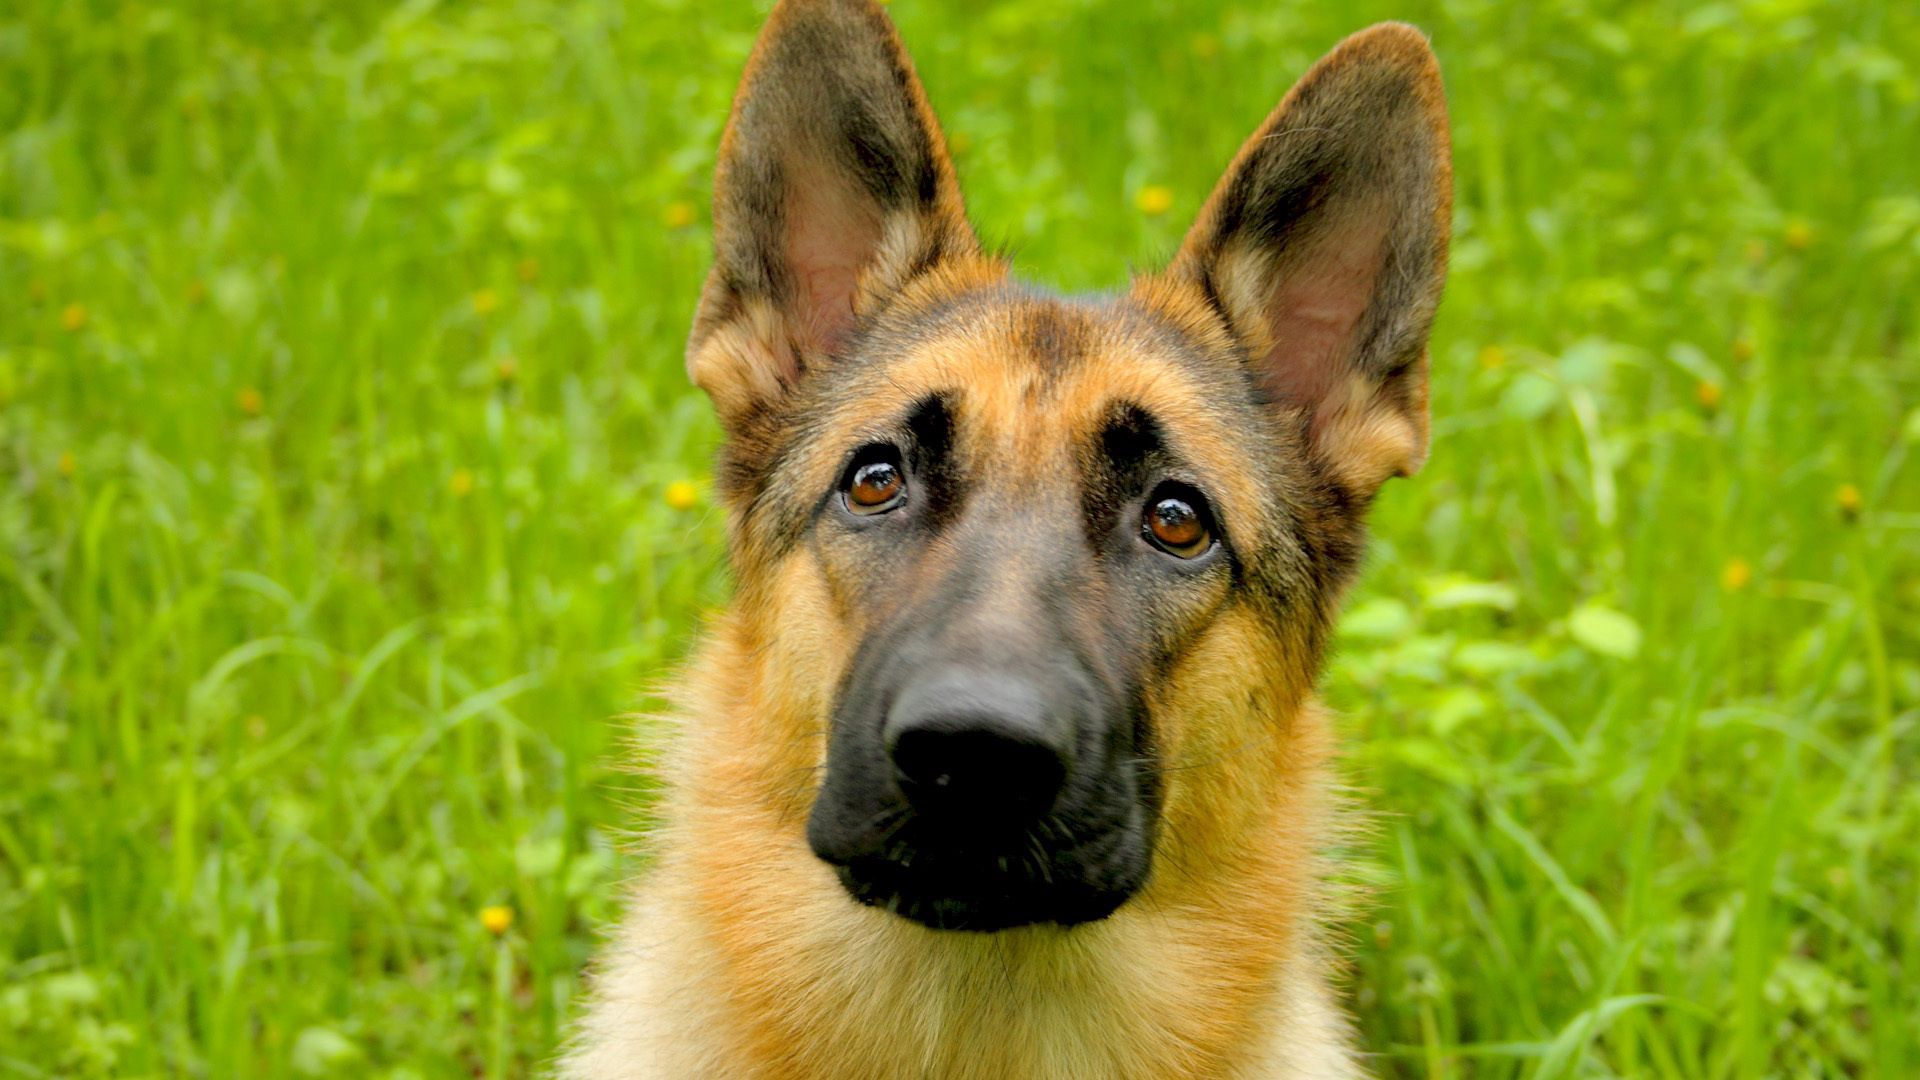 100923 download wallpaper Animals, Dog, Muzzle, Grass, Hunting, Hunt screensavers and pictures for free